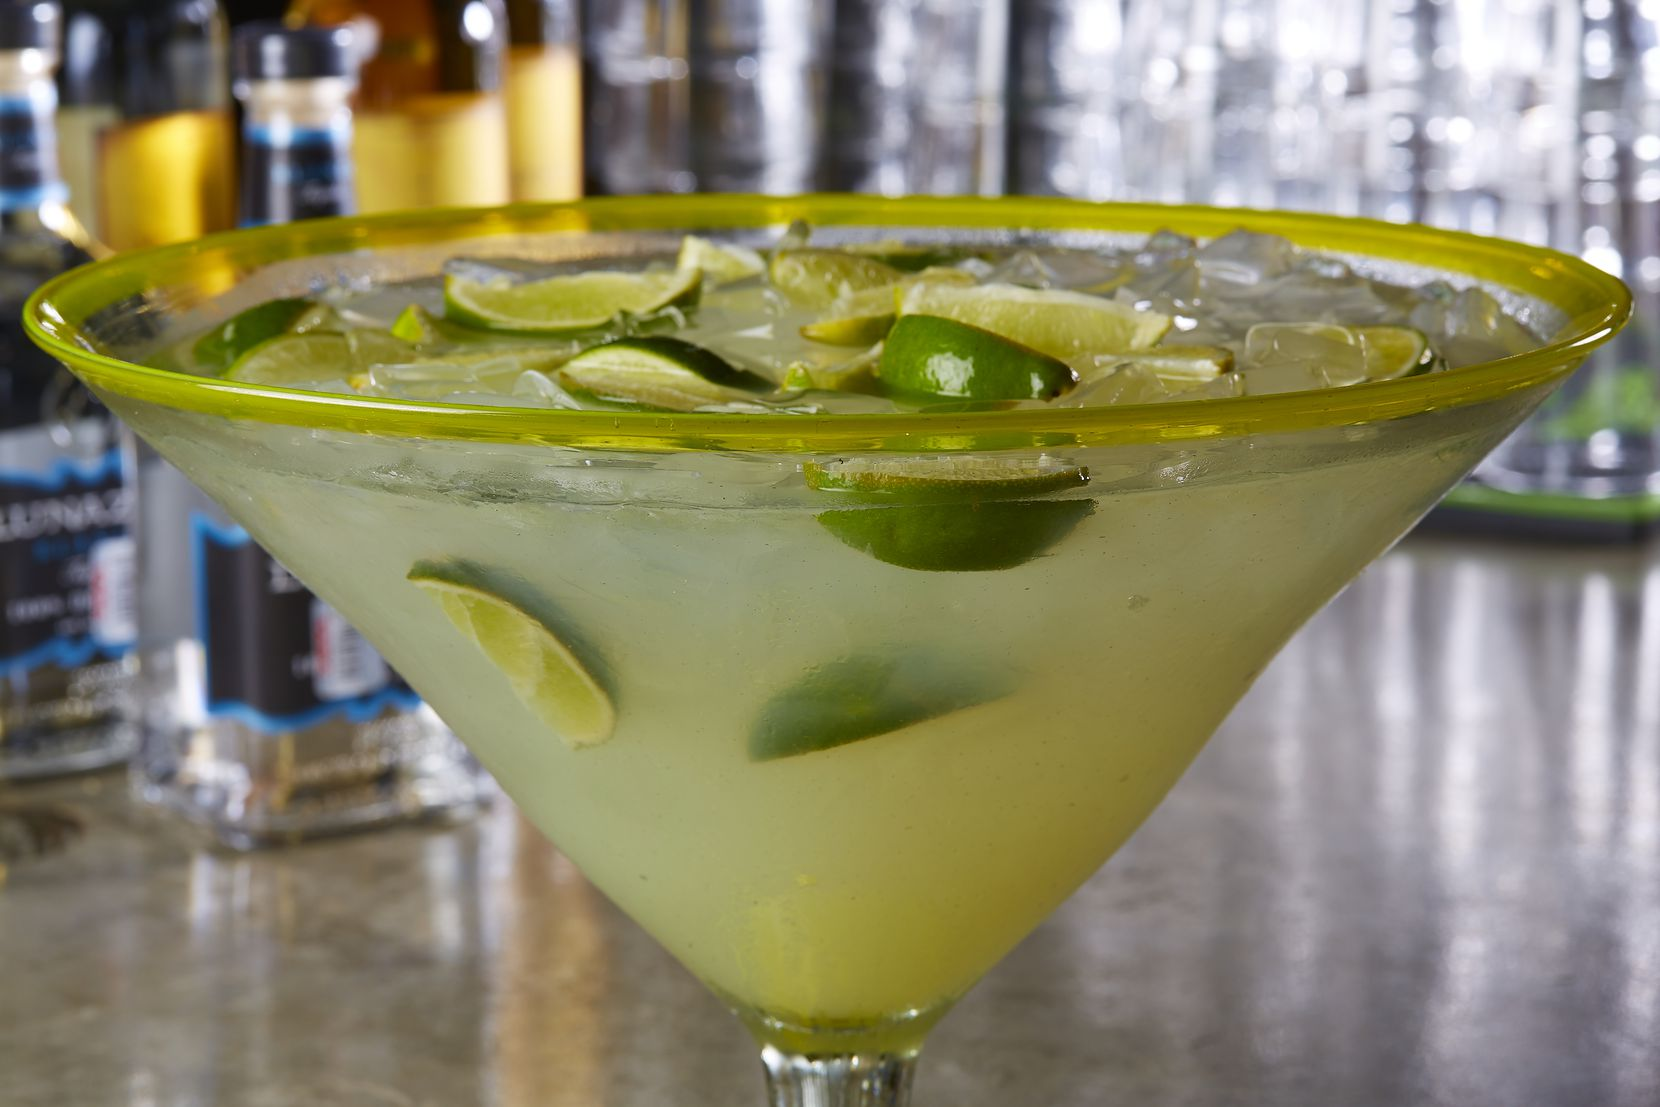 Vidorra in Dallas is offering its shareable Vidorrita specialty margarita for $30 in celebration of National Margarita Day on Feb. 22, 2020.